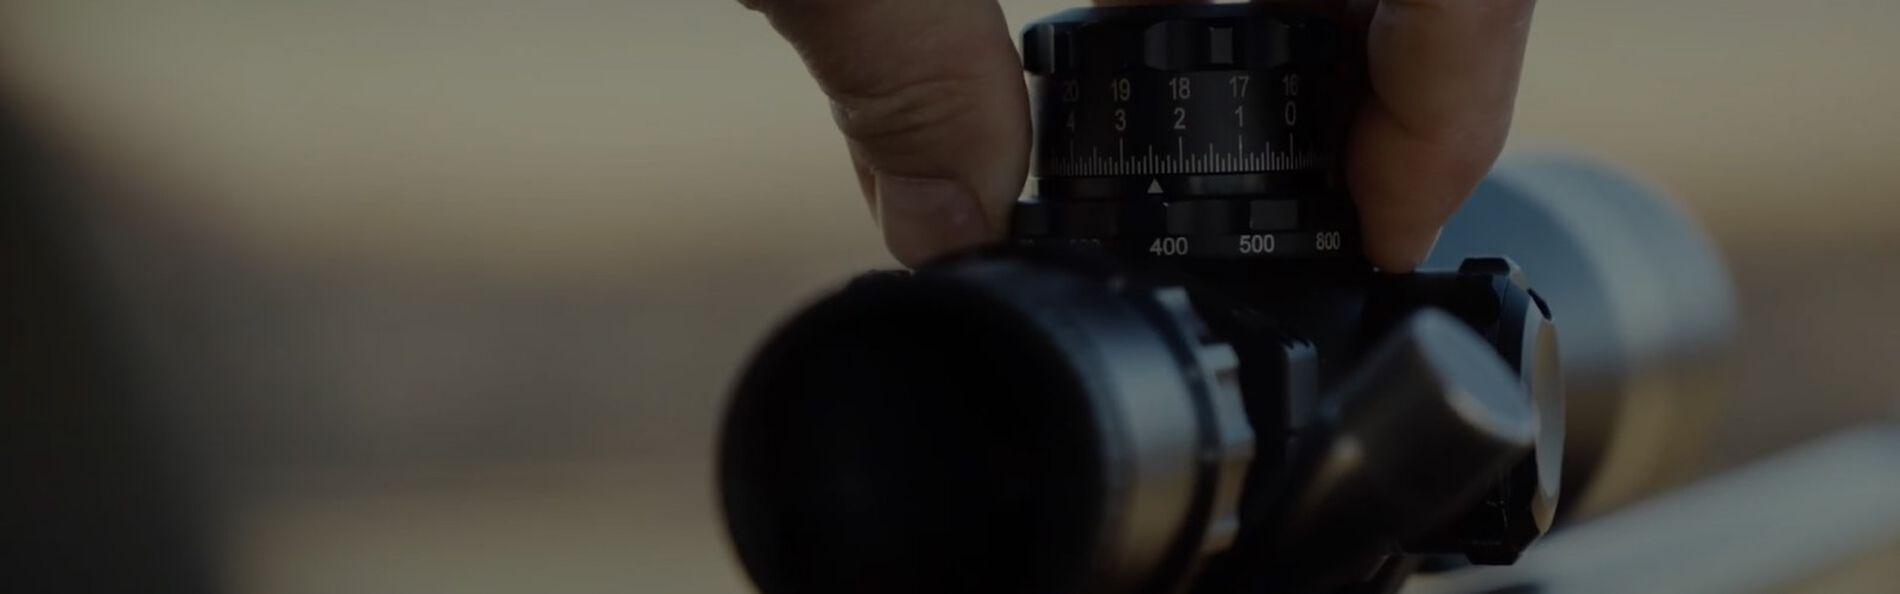 Range Dial being turned up on a rifle scope